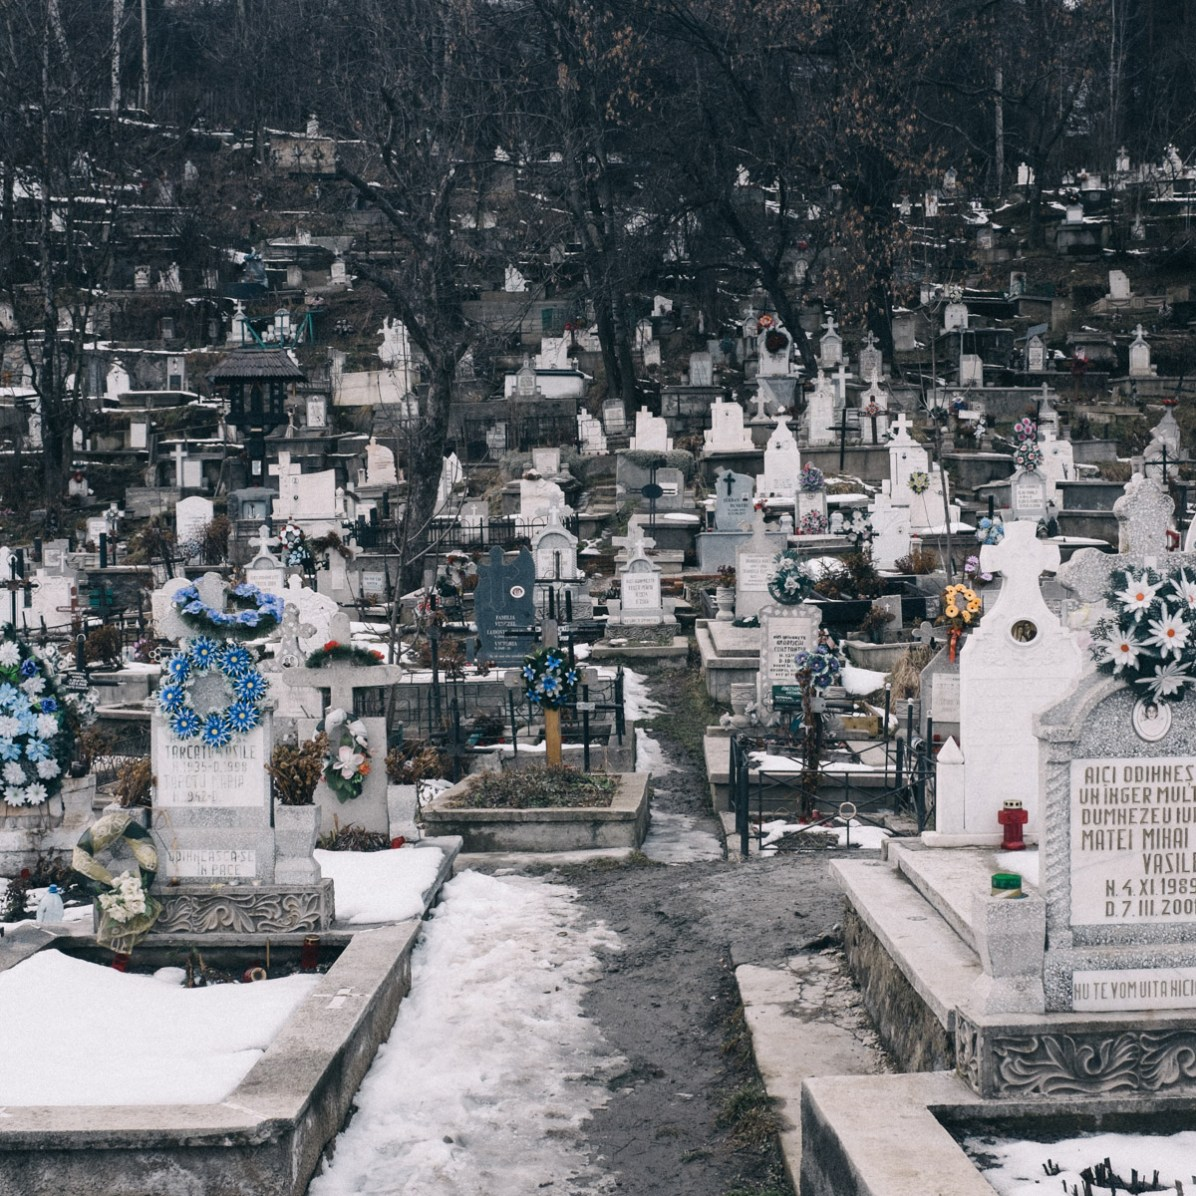 The disorderly graveyard of Petrila, Romania.